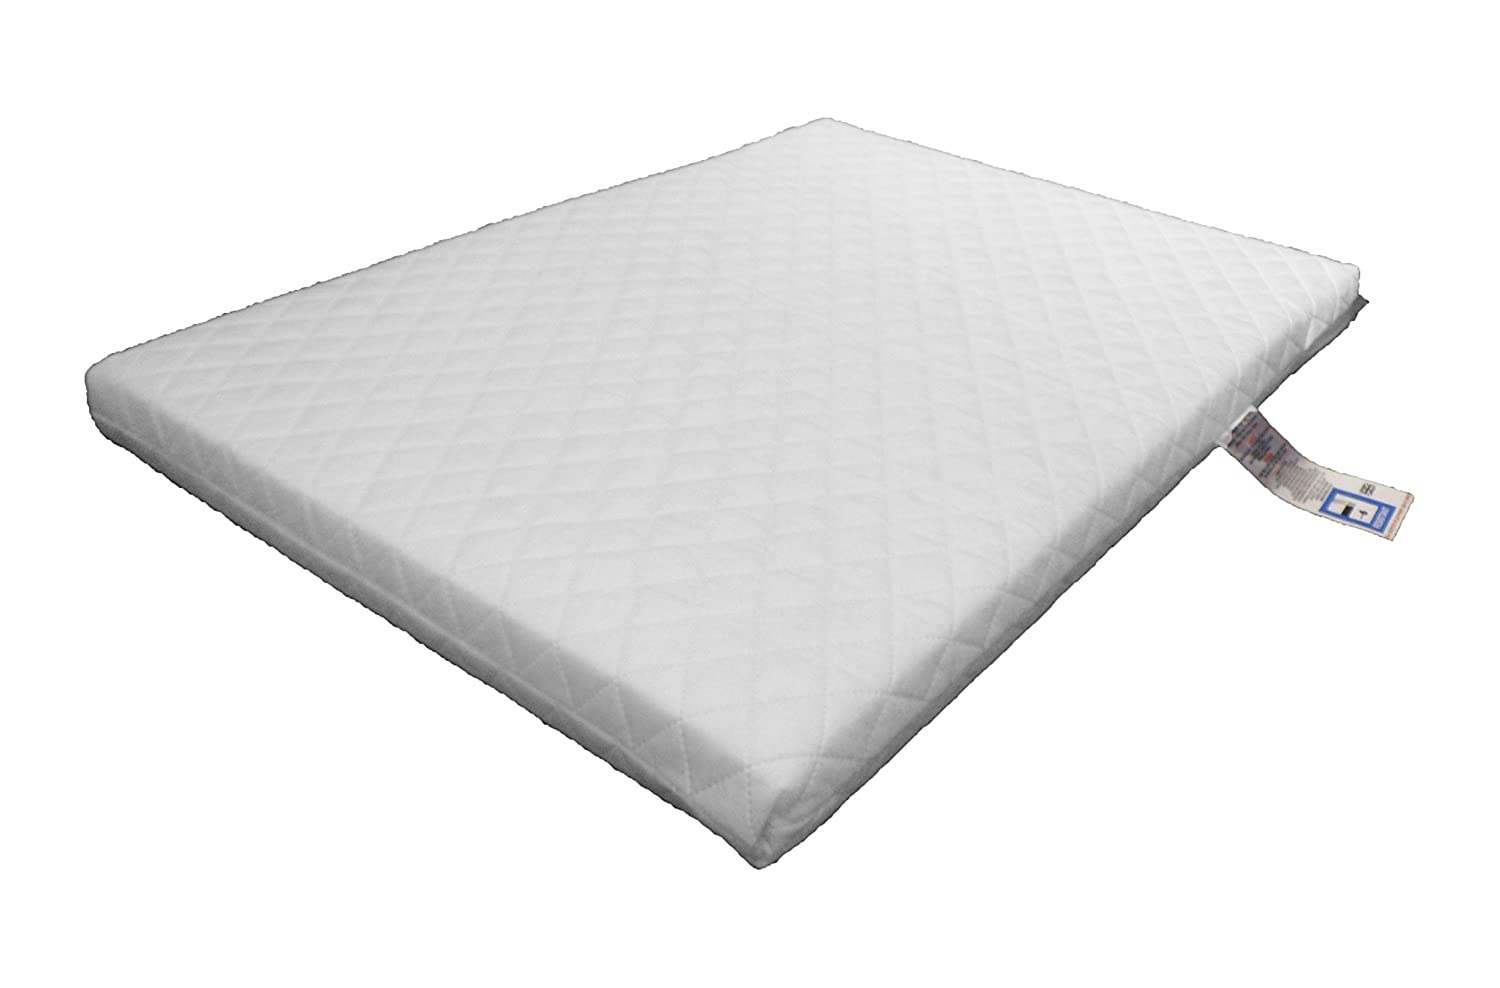 LAURA® Deluxe Hypo-Allergenic Eco Air Flow Quilted Dual Sided Travel Cot Mattress 95 x 65cm x 5cm Thick British Made